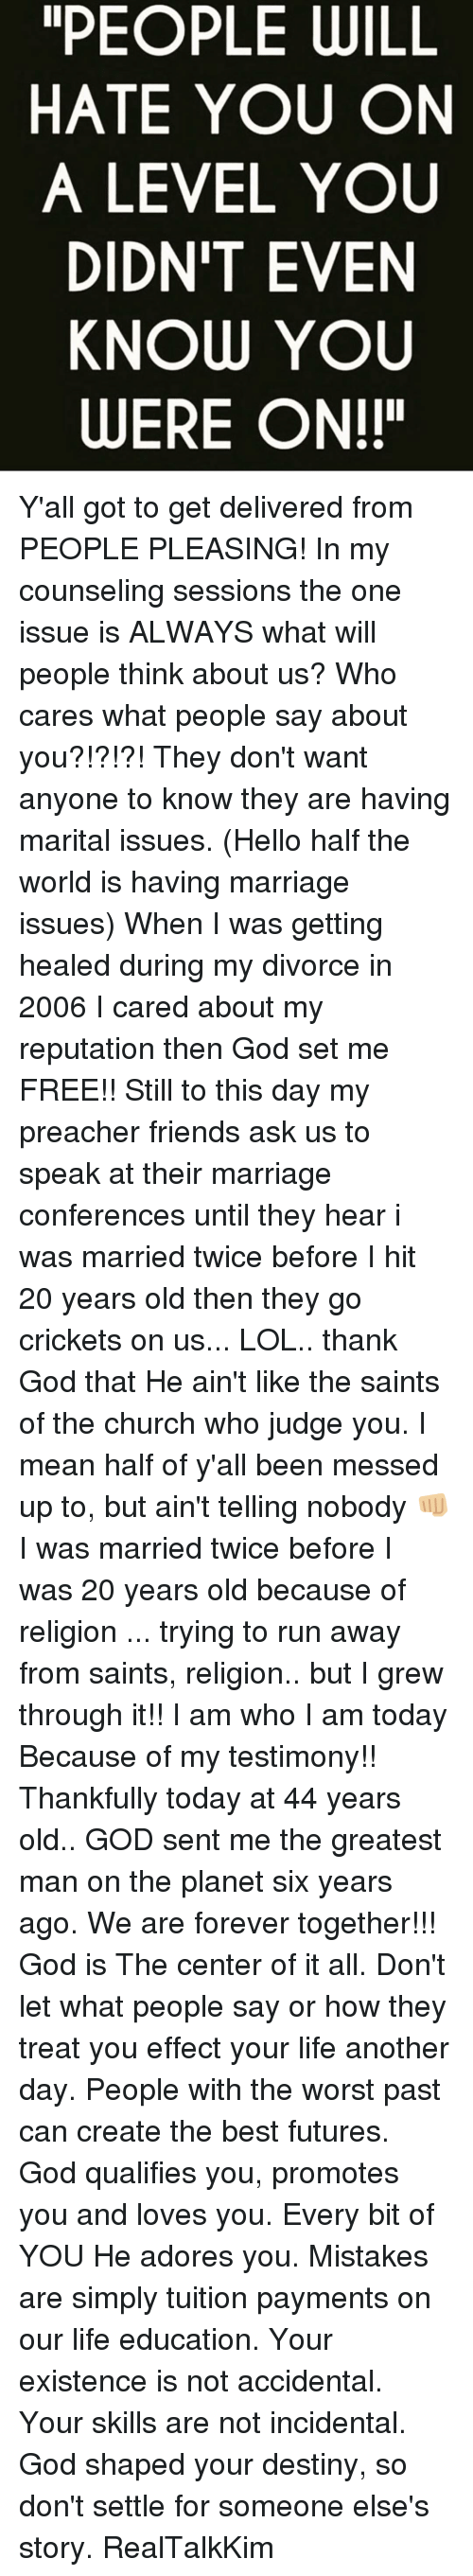 """Church, Destiny, and Marriage: PEOPLE WILL  HATE YOU ON  A LEVEL YOU  DIDN'T EVEN  KNOW YOU  WERE ON!"""" Y'all got to get delivered from PEOPLE PLEASING! In my counseling sessions the one issue is ALWAYS what will people think about us? Who cares what people say about you?!?!?! They don't want anyone to know they are having marital issues. (Hello half the world is having marriage issues) When I was getting healed during my divorce in 2006 I cared about my reputation then God set me FREE!! Still to this day my preacher friends ask us to speak at their marriage conferences until they hear i was married twice before I hit 20 years old then they go crickets on us... LOL.. thank God that He ain't like the saints of the church who judge you. I mean half of y'all been messed up to, but ain't telling nobody 👊🏼 I was married twice before I was 20 years old because of religion ... trying to run away from saints, religion.. but I grew through it!! I am who I am today Because of my testimony!! Thankfully today at 44 years old.. GOD sent me the greatest man on the planet six years ago. We are forever together!!! God is The center of it all. Don't let what people say or how they treat you effect your life another day. People with the worst past can create the best futures. God qualifies you, promotes you and loves you. Every bit of YOU He adores you. Mistakes are simply tuition payments on our life education. Your existence is not accidental. Your skills are not incidental. God shaped your destiny, so don't settle for someone else's story. RealTalkKim"""